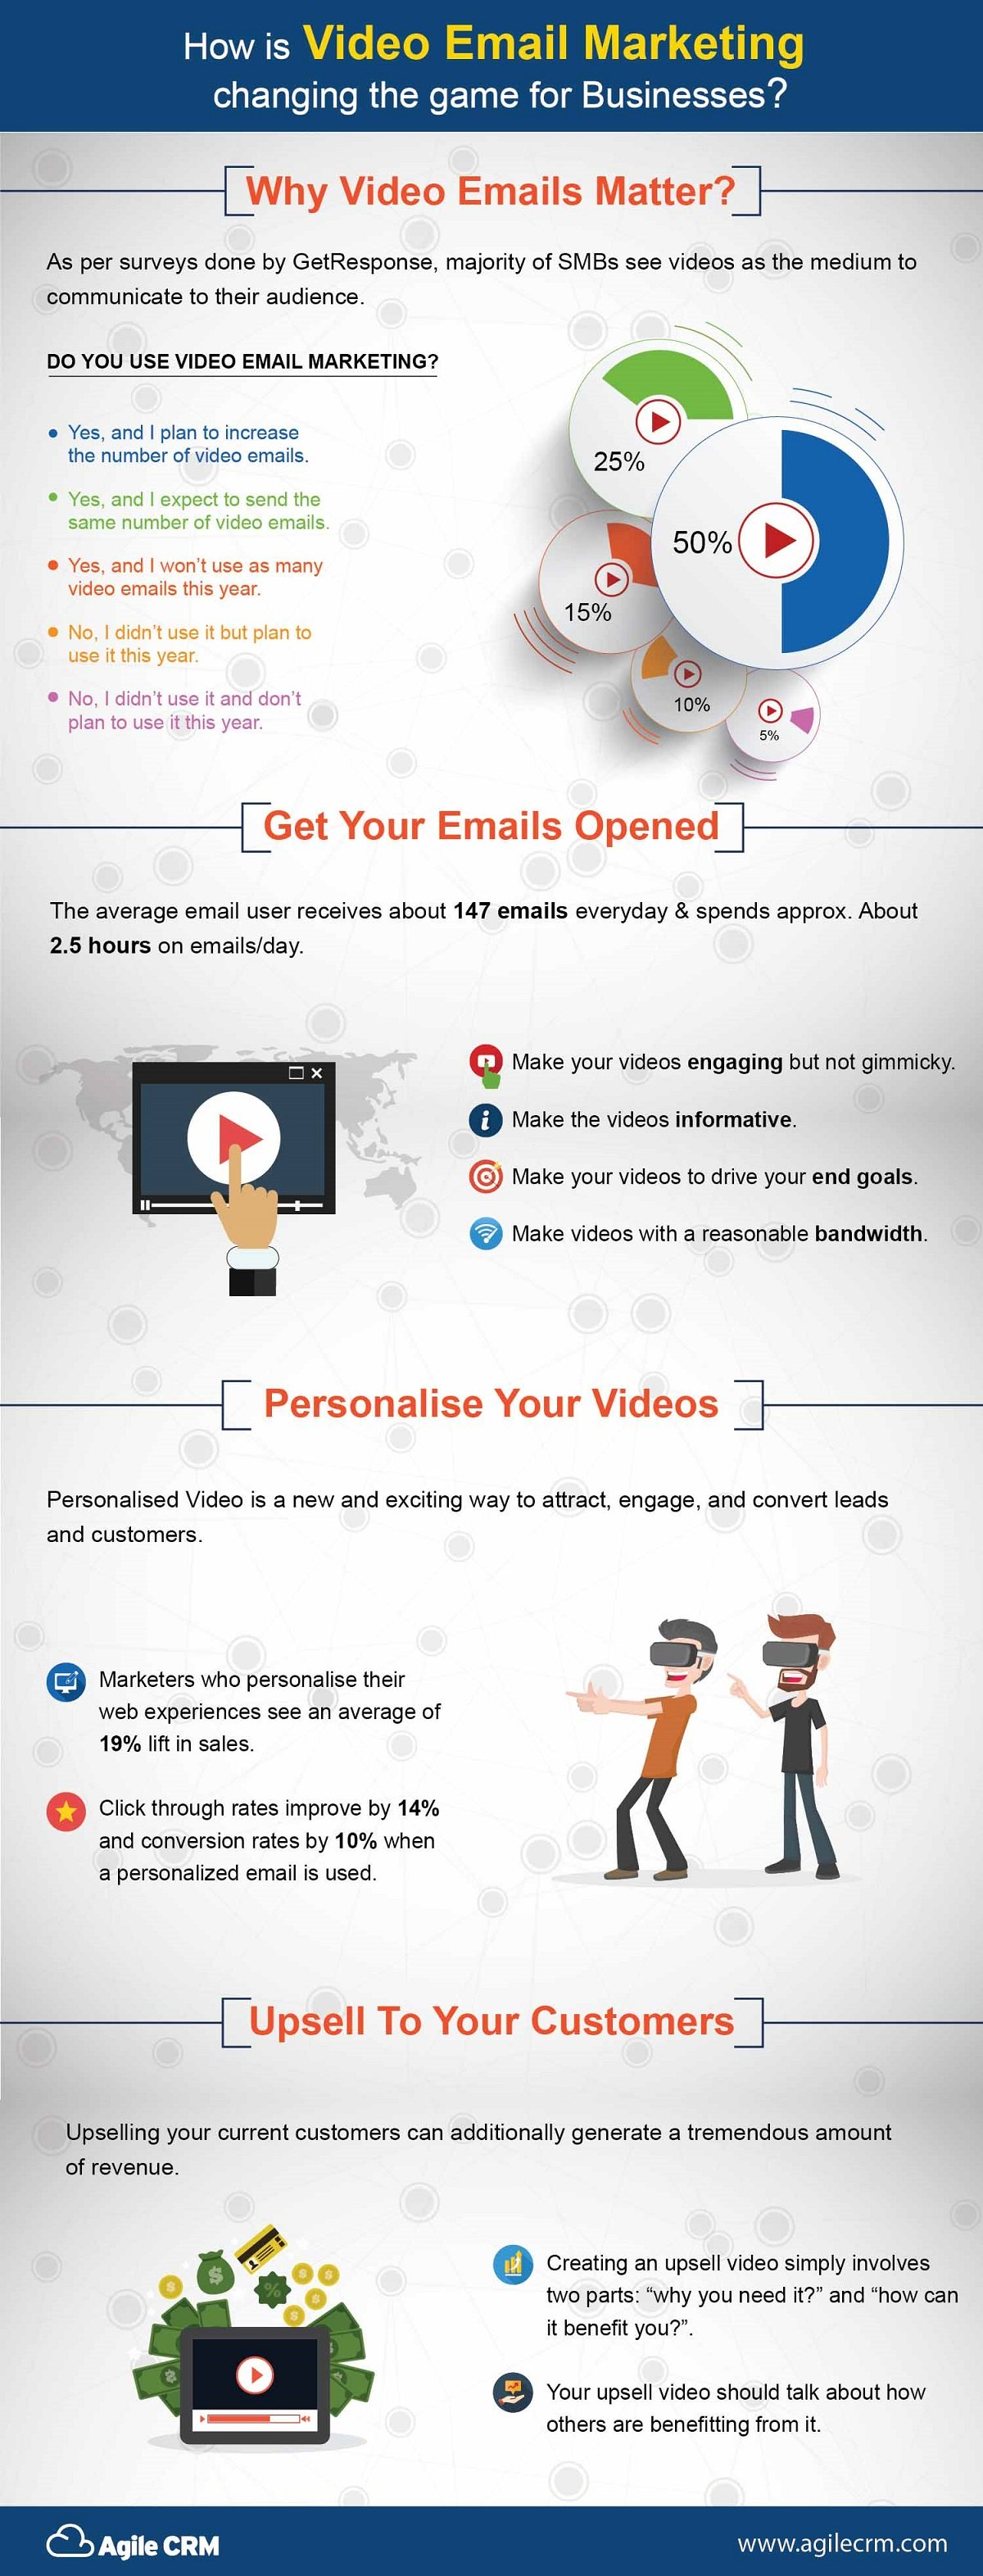 video-email-marketing